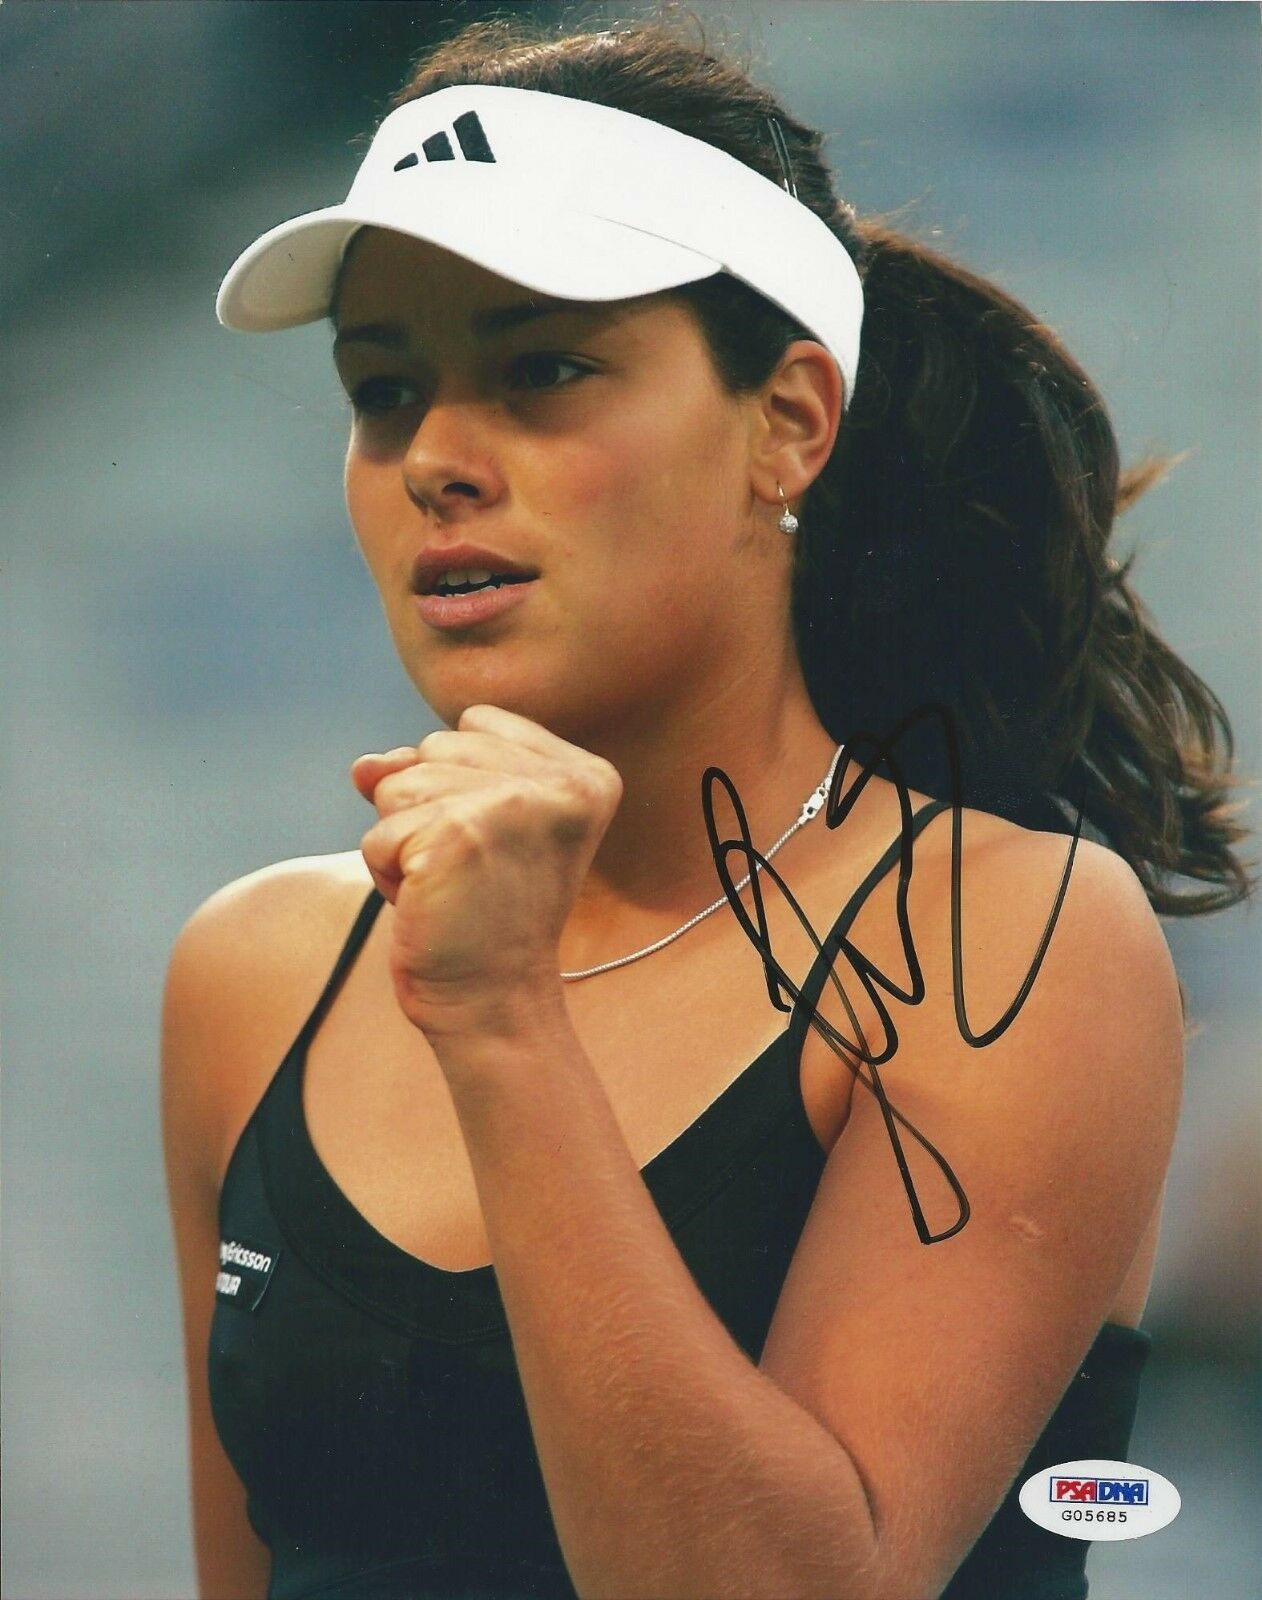 Ana Ivanovic Signed 8x10 Photo - PSA/DNA # G05685